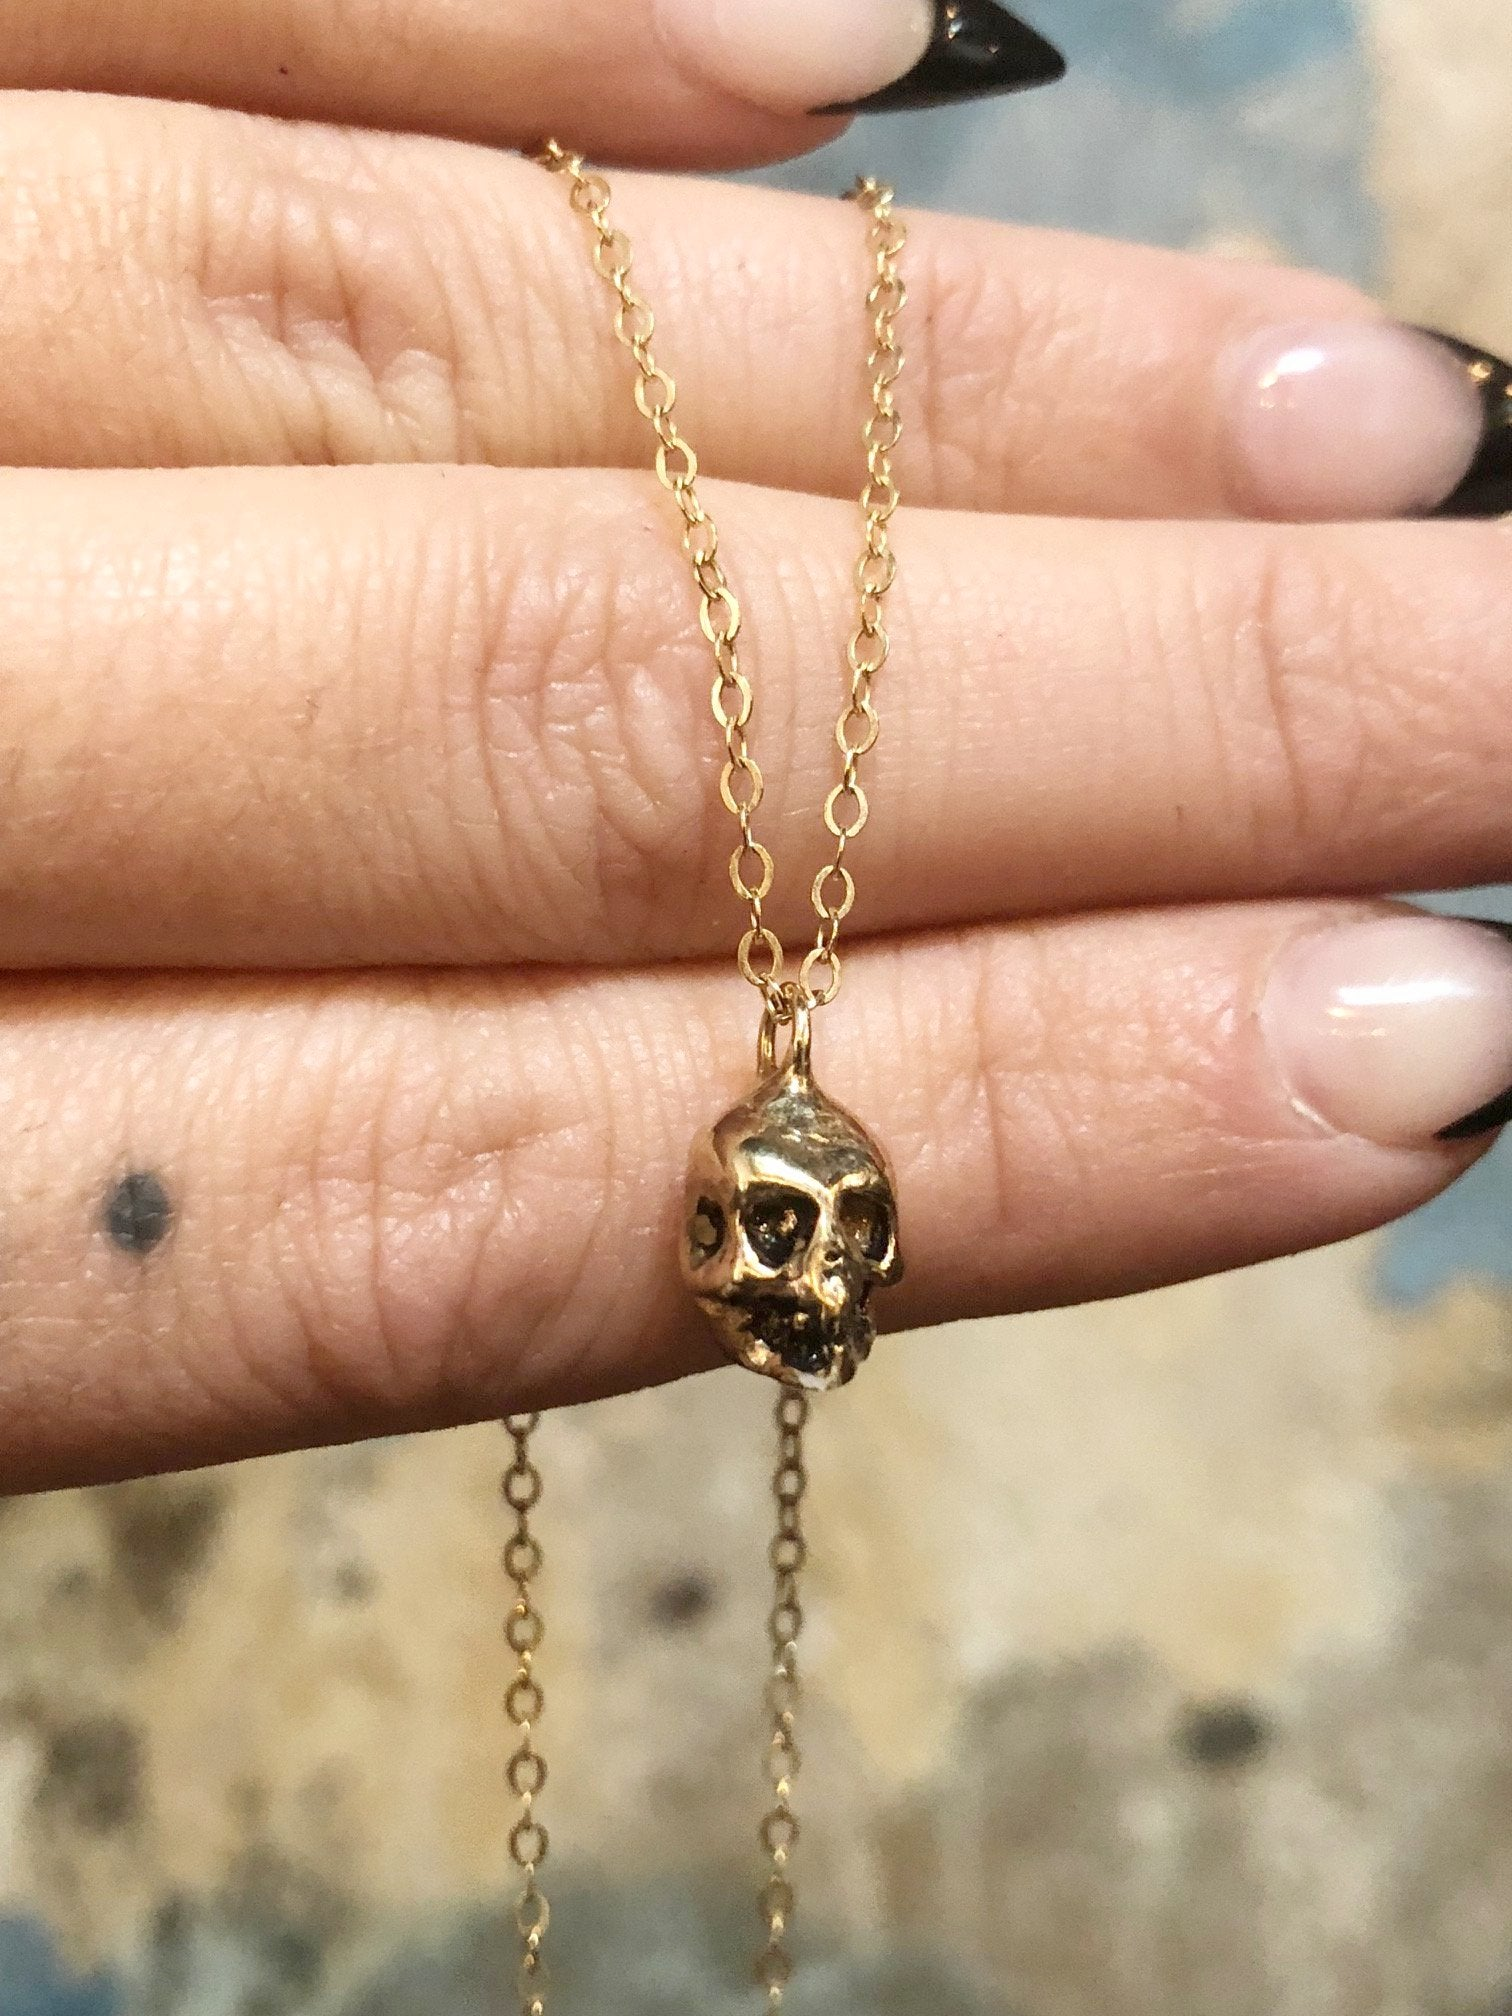 Hell Hound Jewelry Gold Skull Necklace